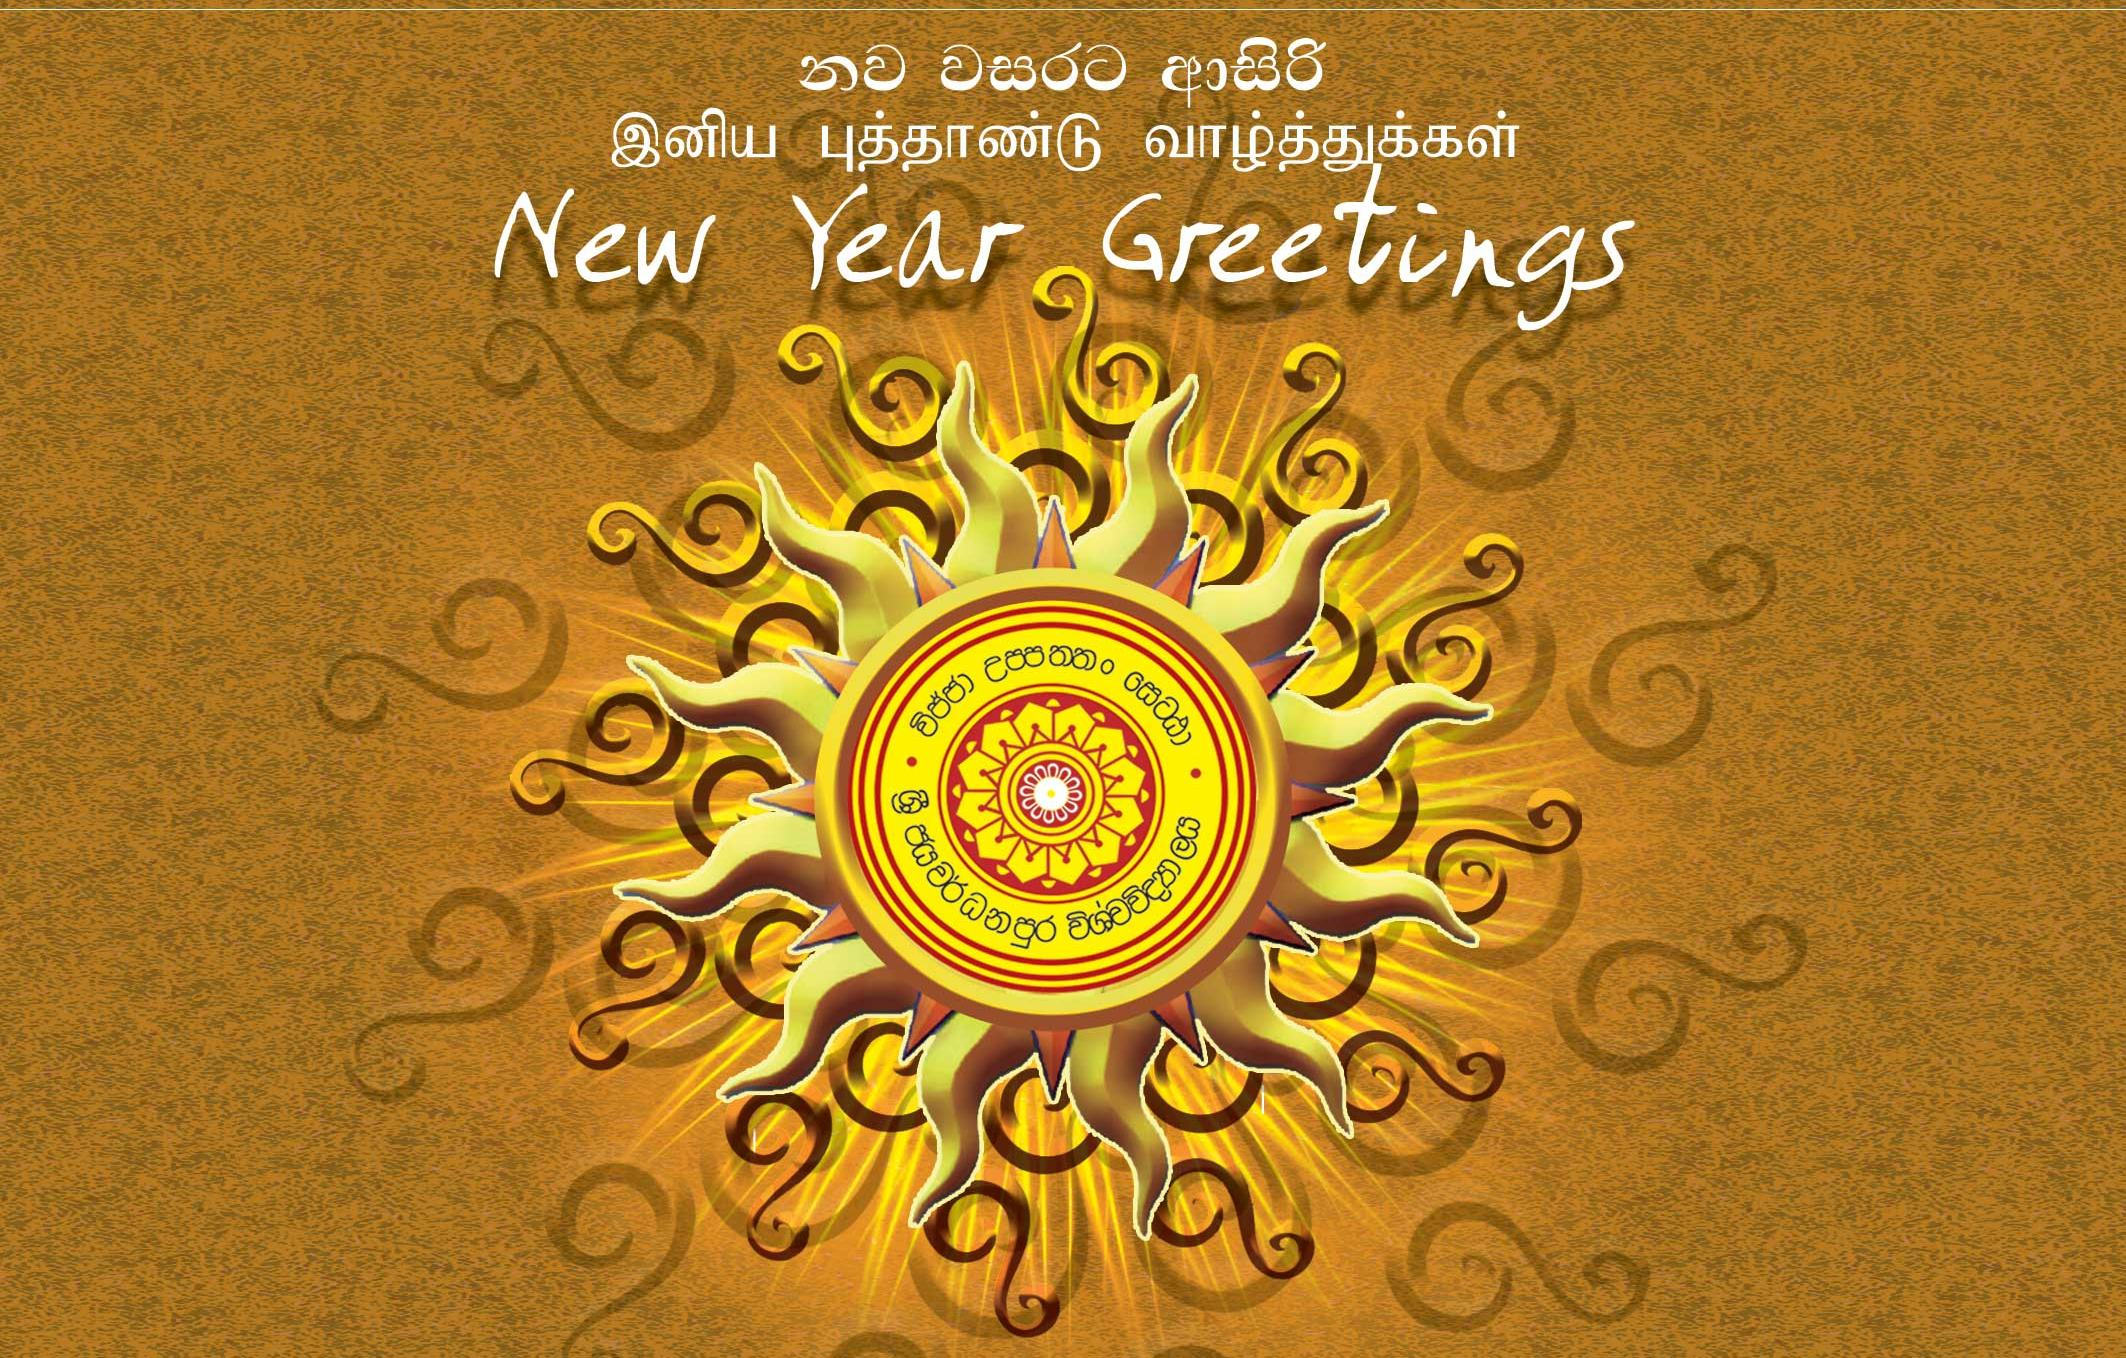 a very happy and prosperous new year 2016